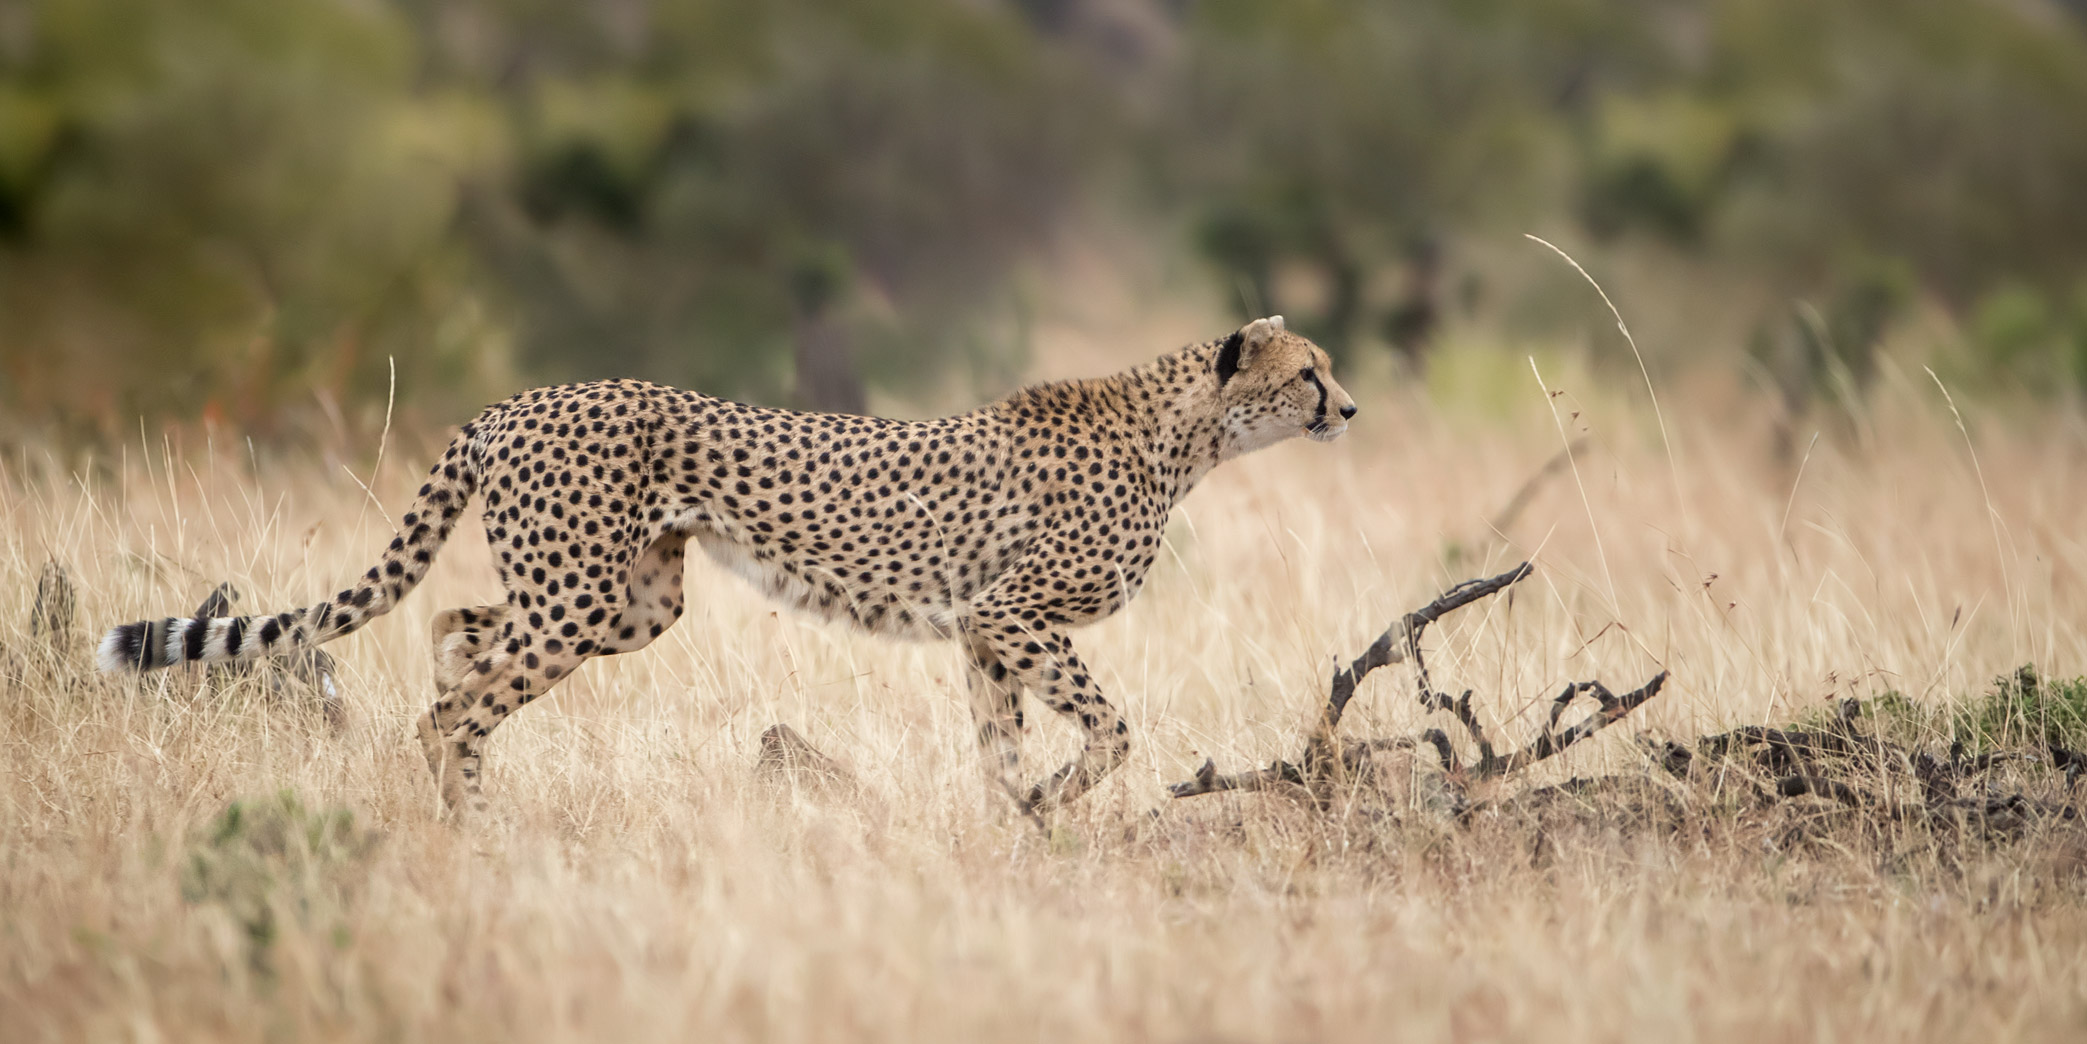 Cheetah, Hunt, Africa, Kenya, Masai Mara, Renee Doyle Photography